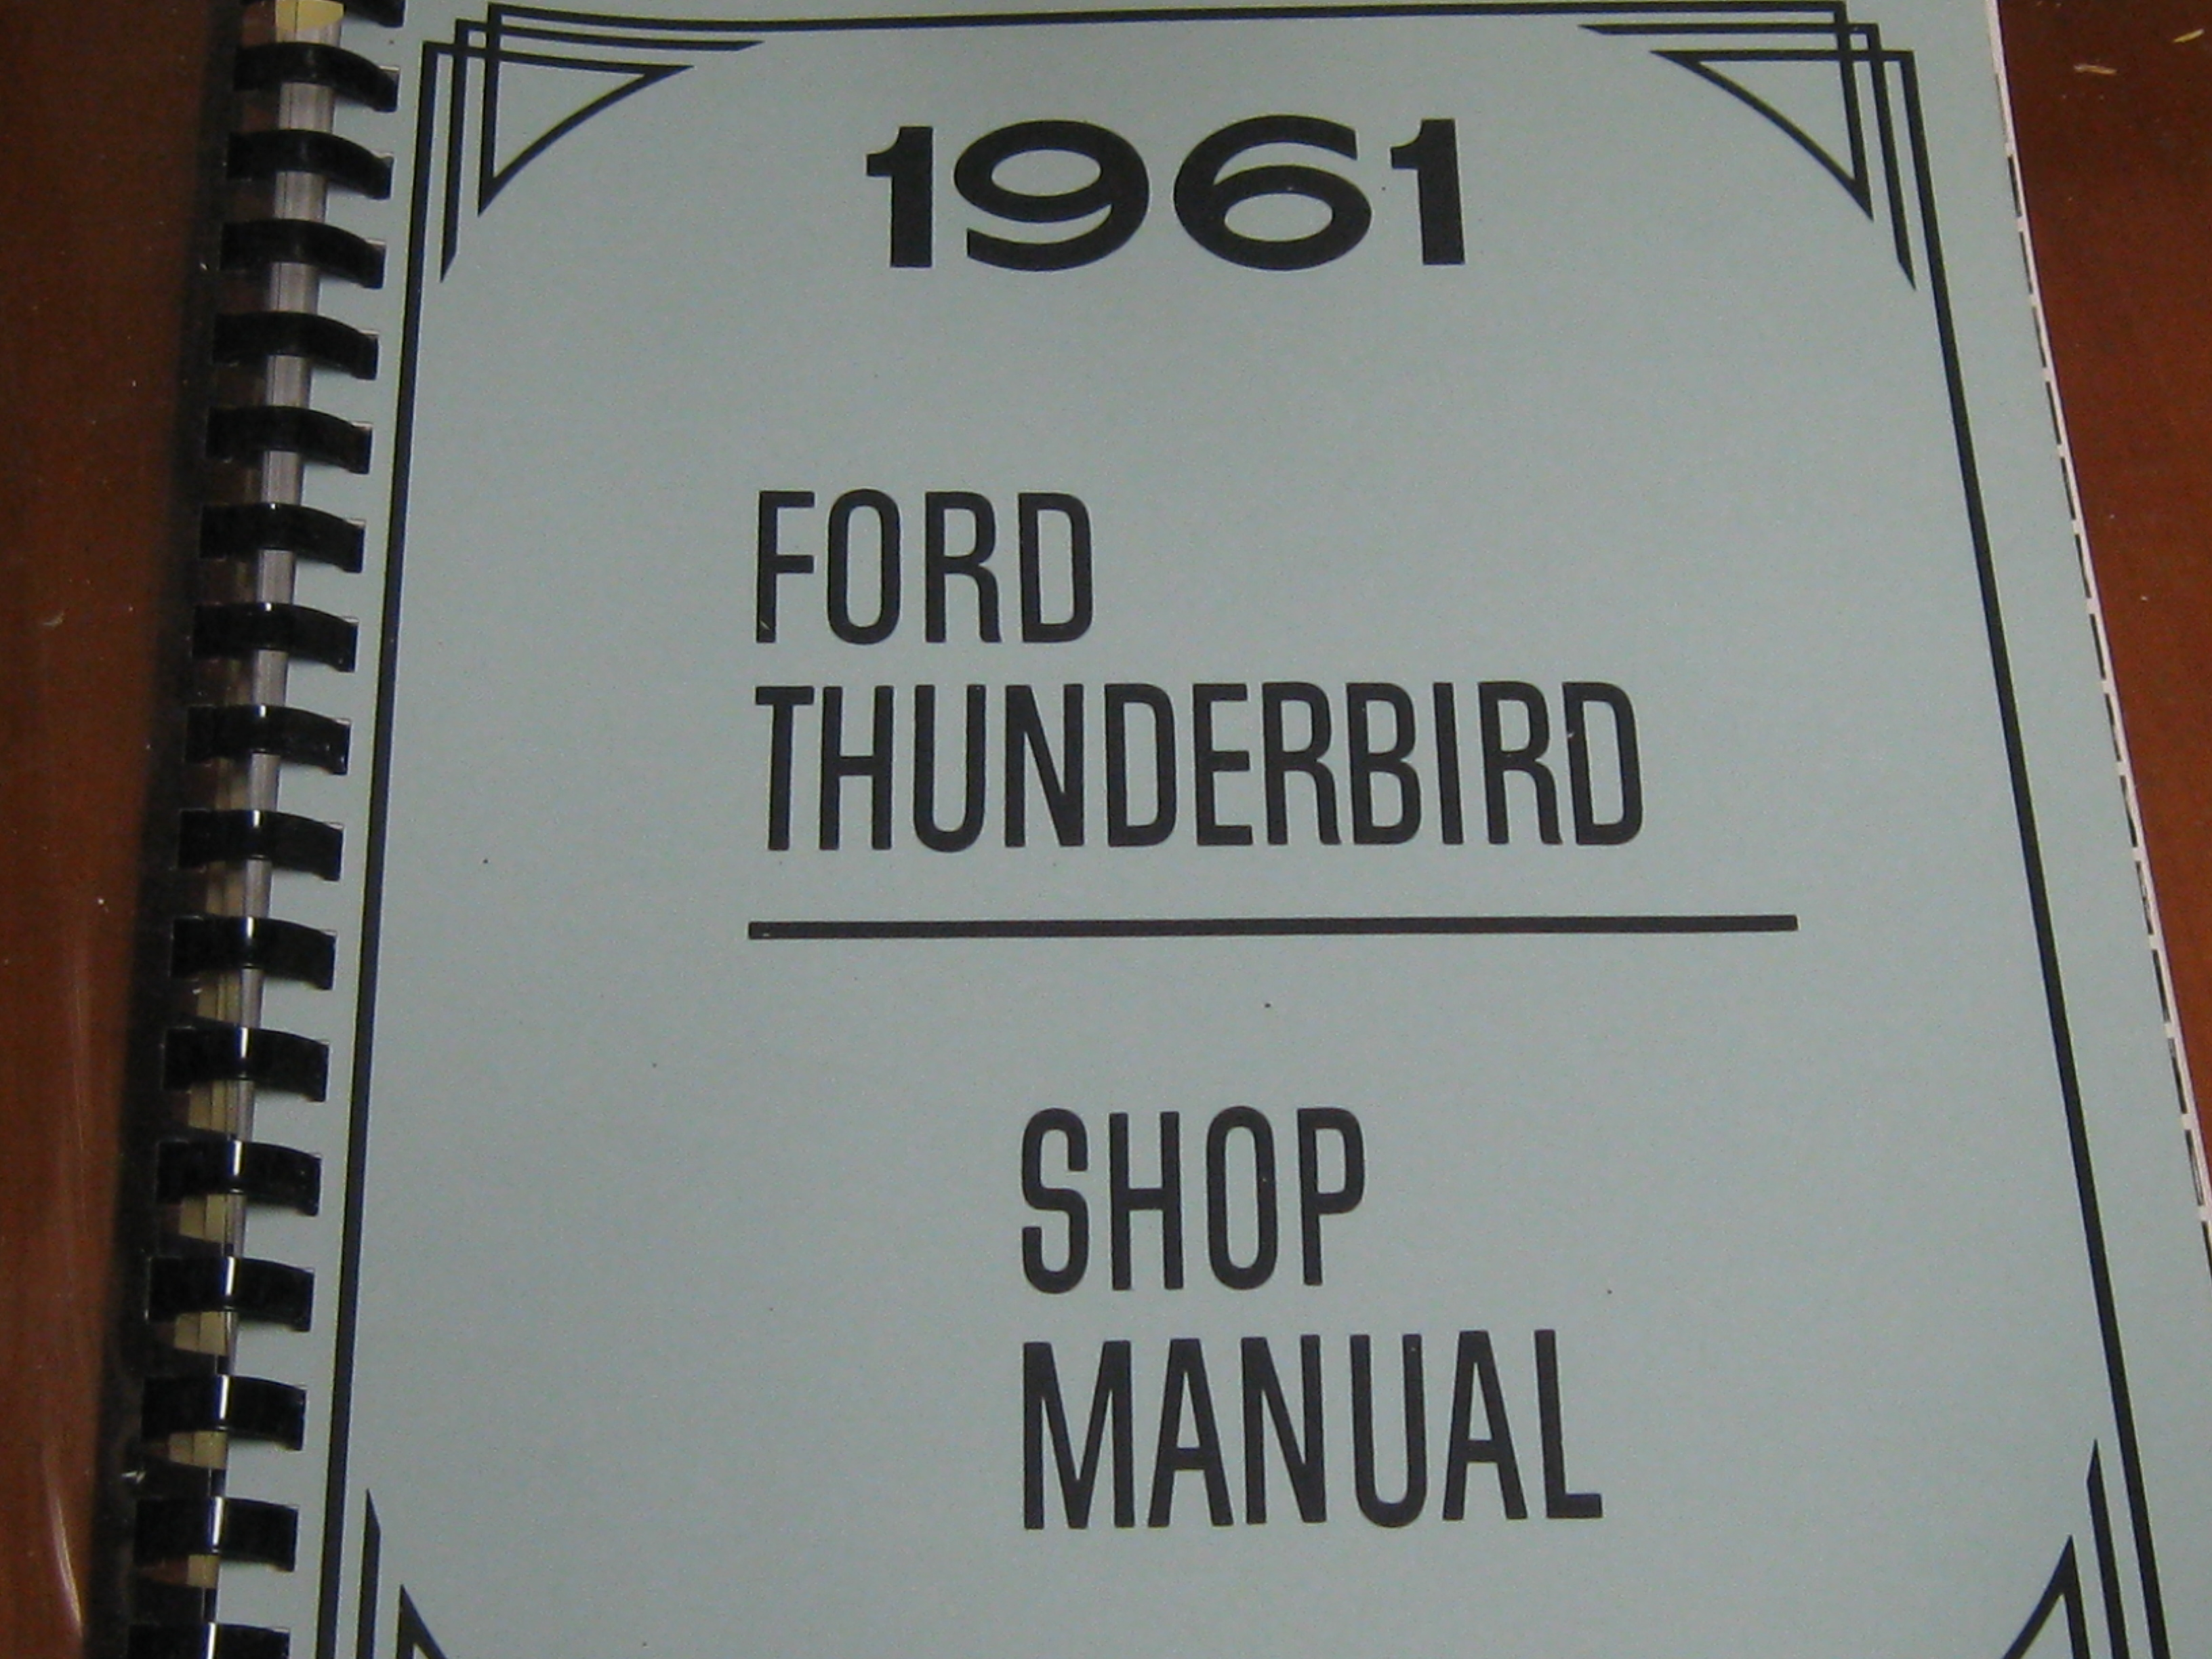 Then and Now Automotive 1961 Ford Thunderbird Shop Manual - Then and Now  Automotive